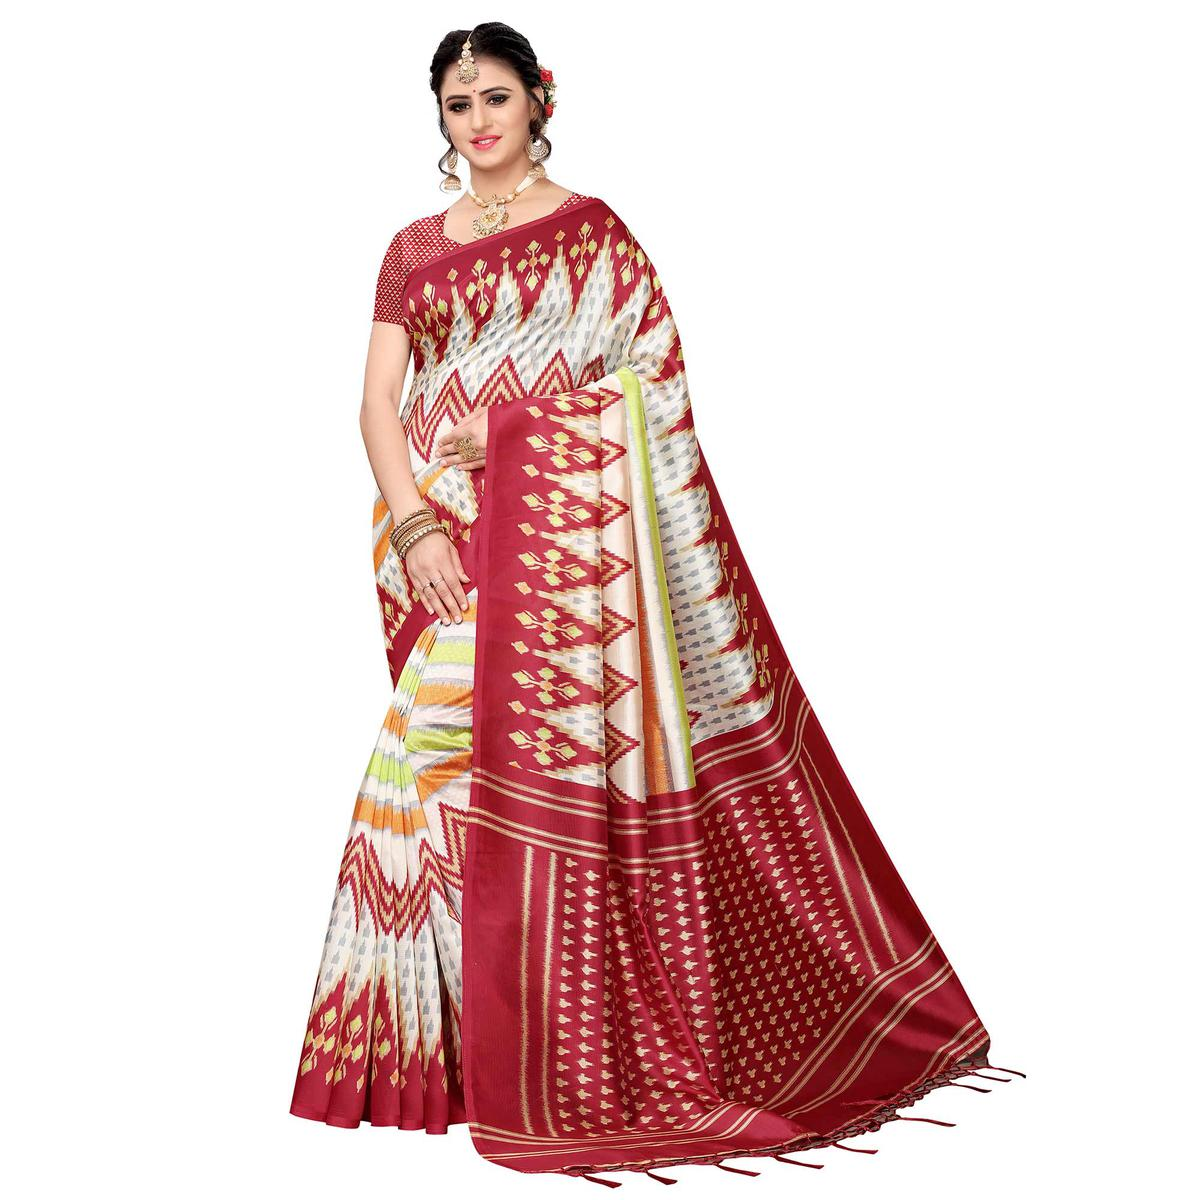 c4917a66ef0819 Buy Fantastic White-Maroon Colored Festive Wear Art Silk Saree for womens  online India, Best Prices, Reviews - Peachmode